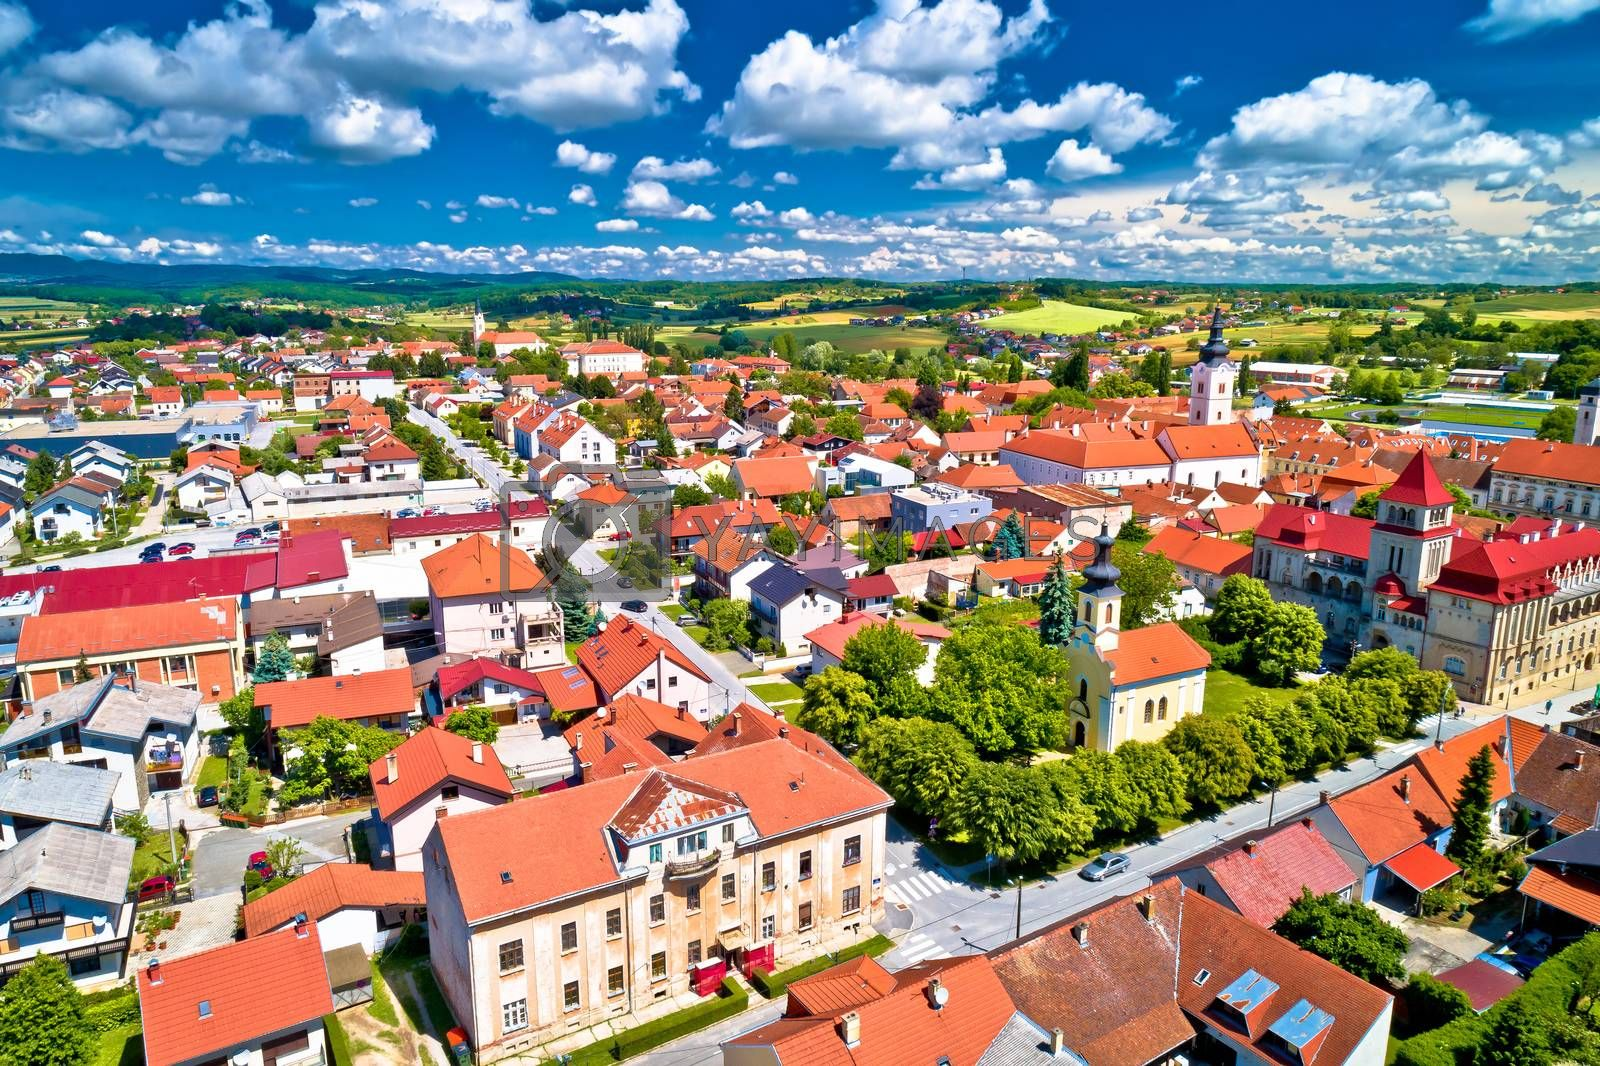 Colorful medieval town of Krizevci aerial view by xbrchx